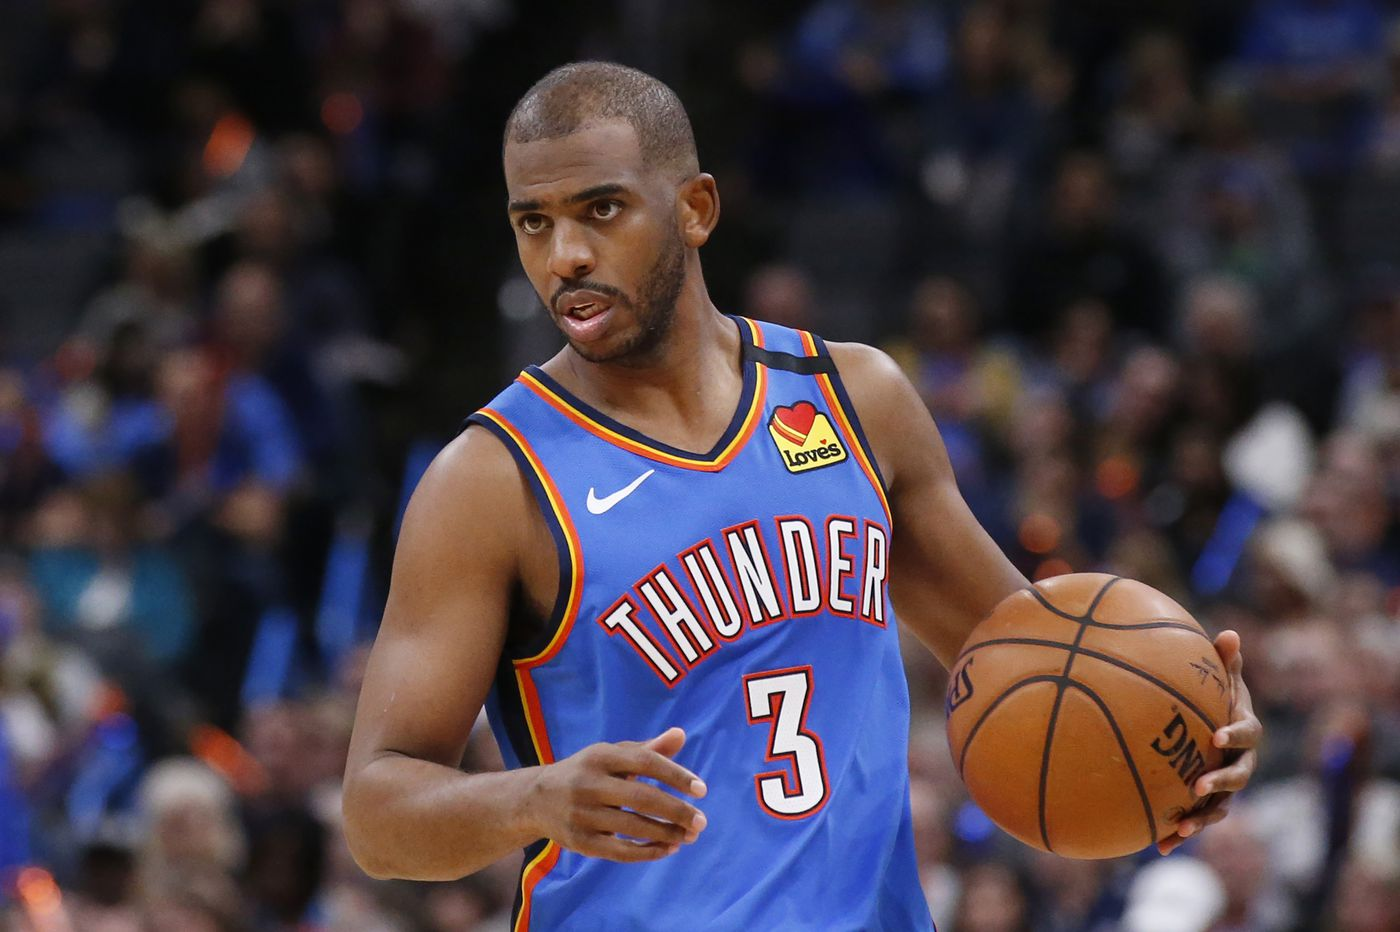 Trading for Chris Paul would give 76ers the leadership and versatility they lack | Sixers mailbag